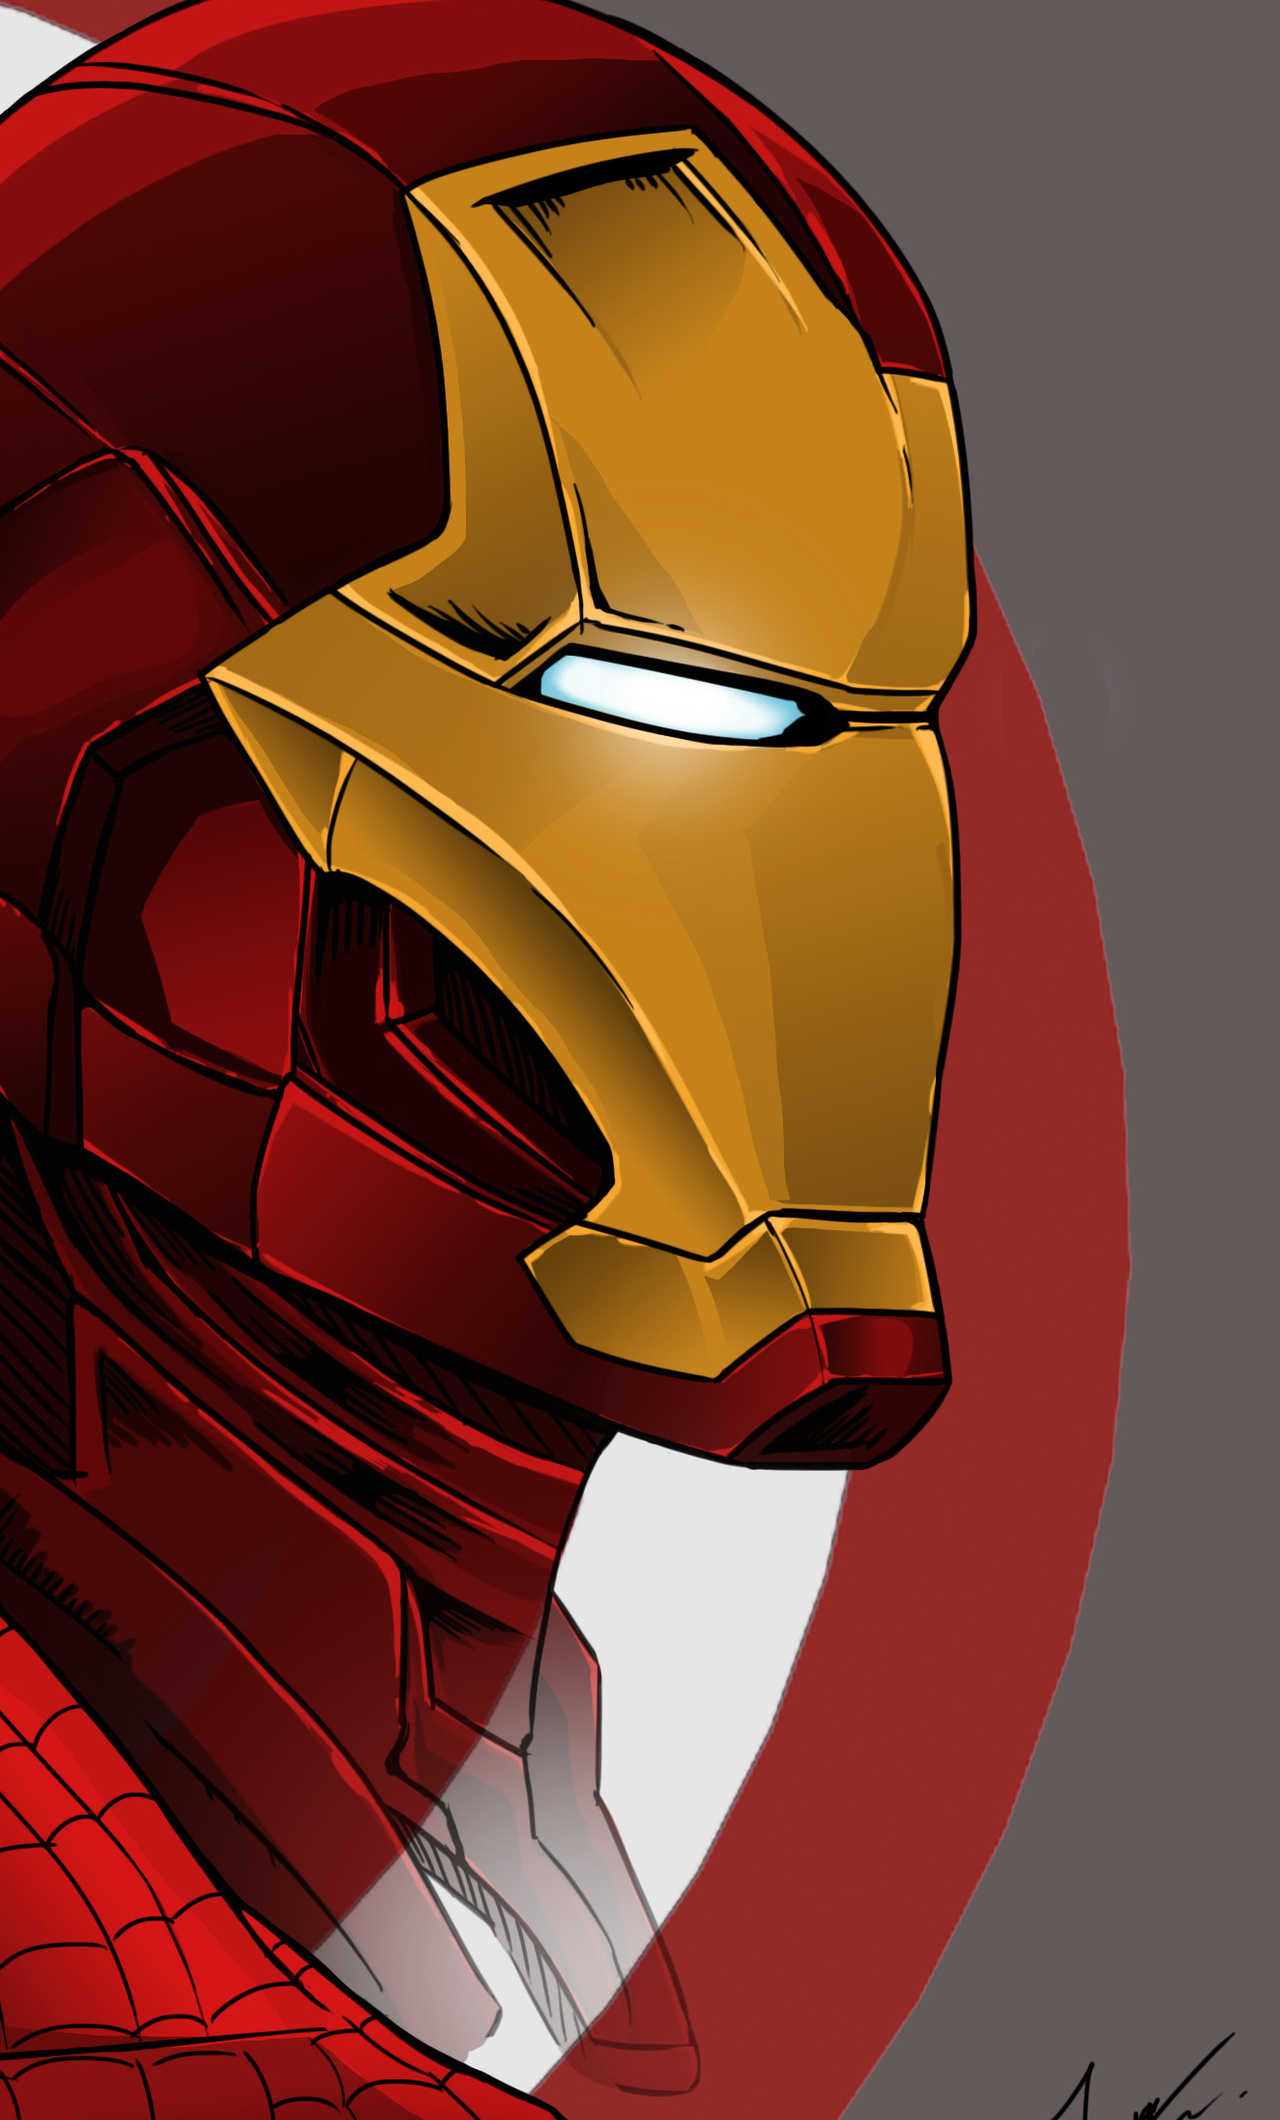 1280x2120 Spiderman Iron Man Captain America Artwork Iphone 6 Hd 4k